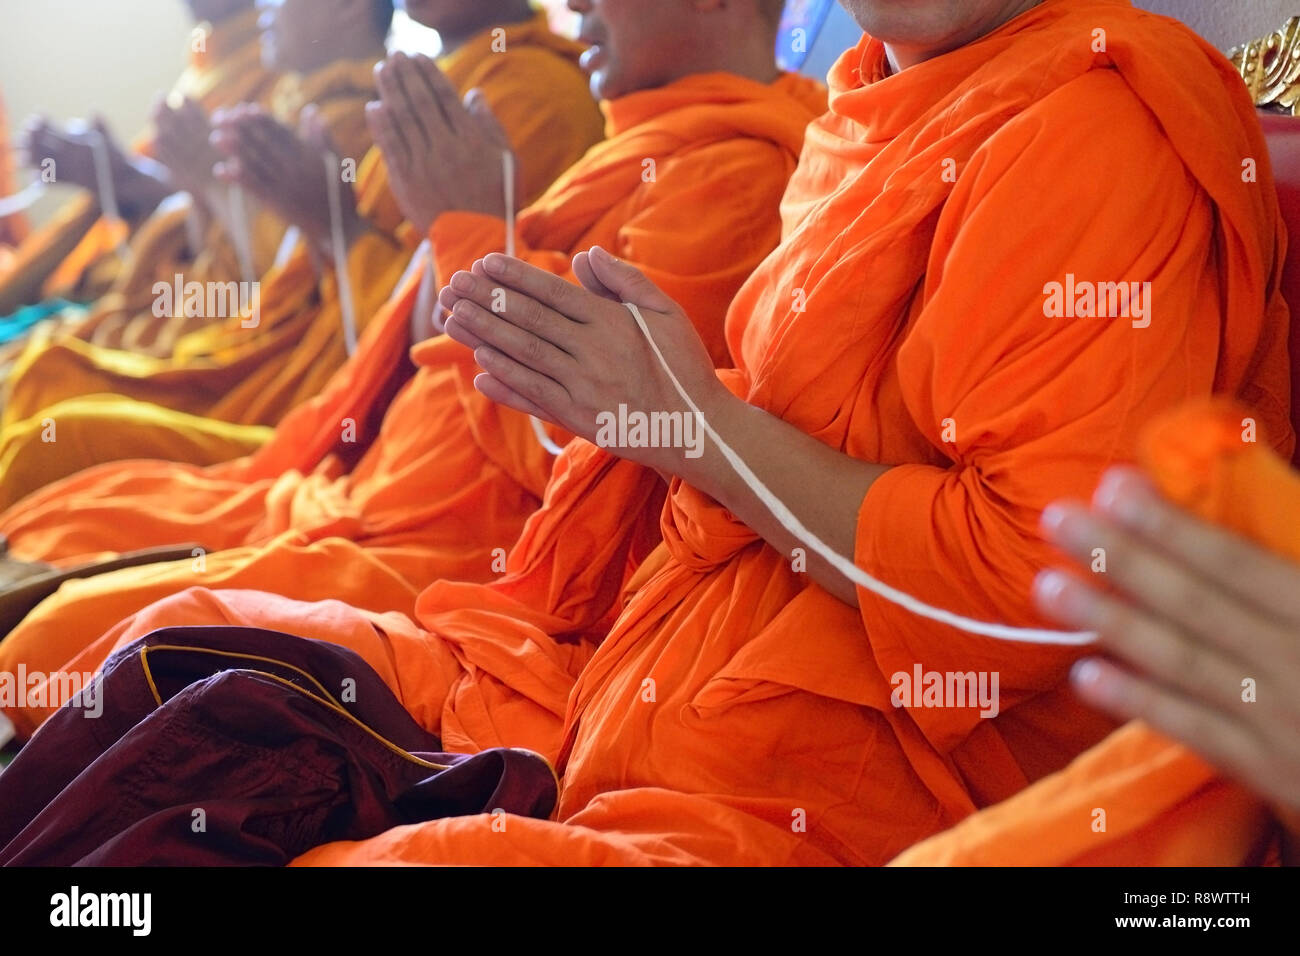 Monks of the religious rituals, Buddhist ceremony - Stock Image